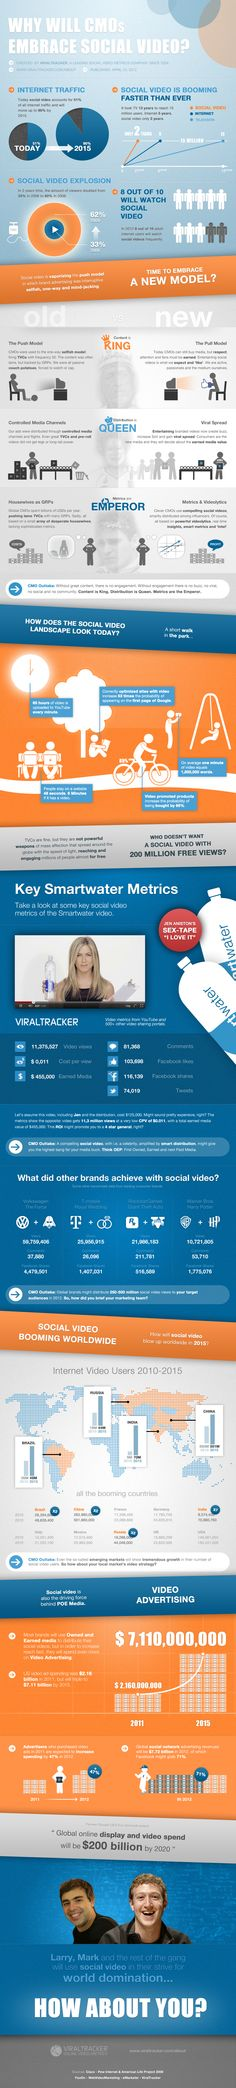 Why Will CMOs Embrace Social Video? #infographic